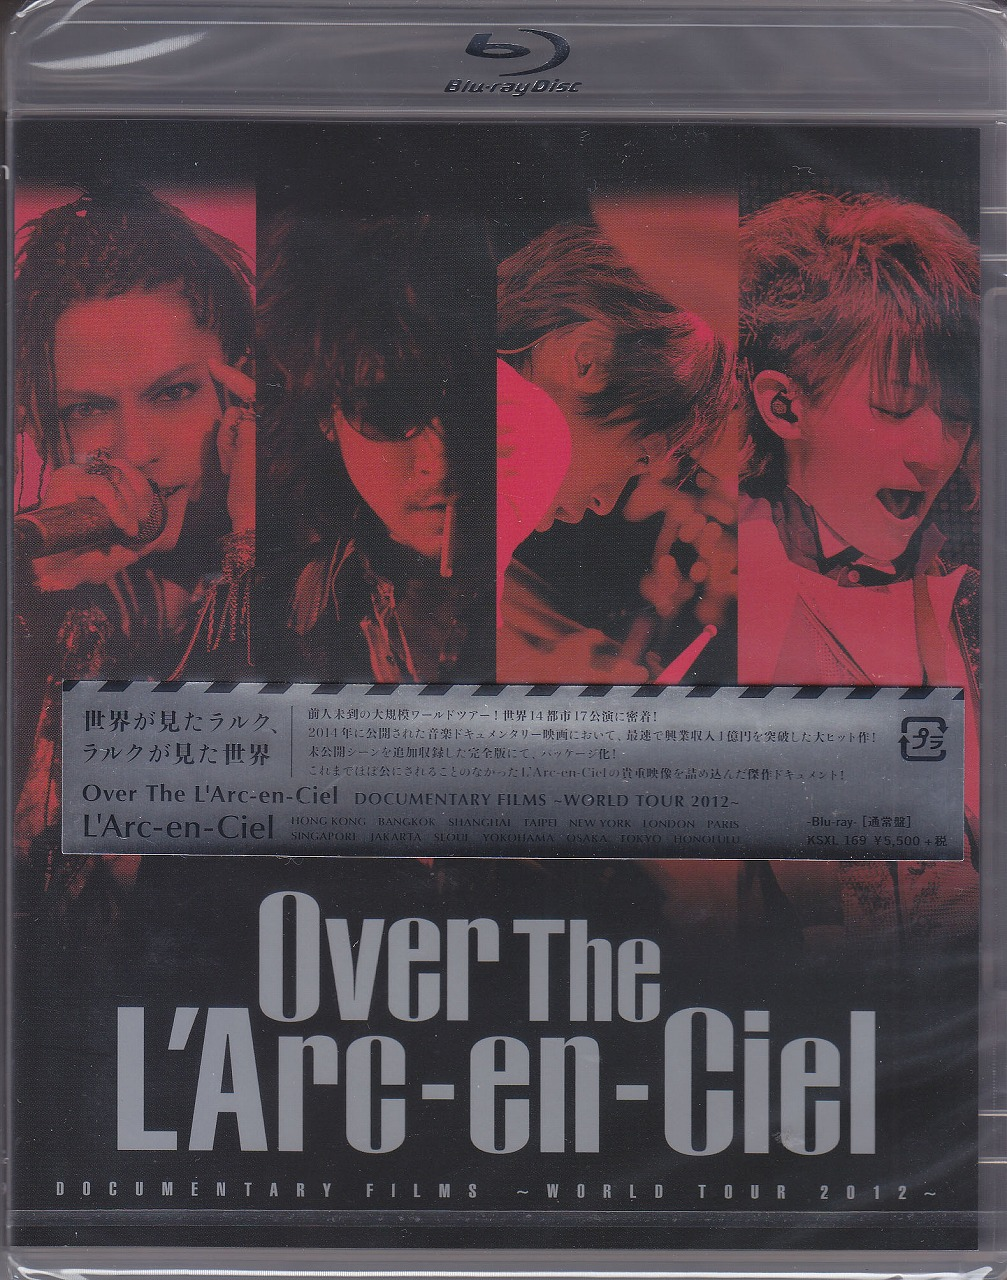 ラルクアンシエル の DVD 【Blu-ray通常盤】DOCUMENTARY FILMS -WORLD TOUR 2012- Over The L'Arc-en-Ciel